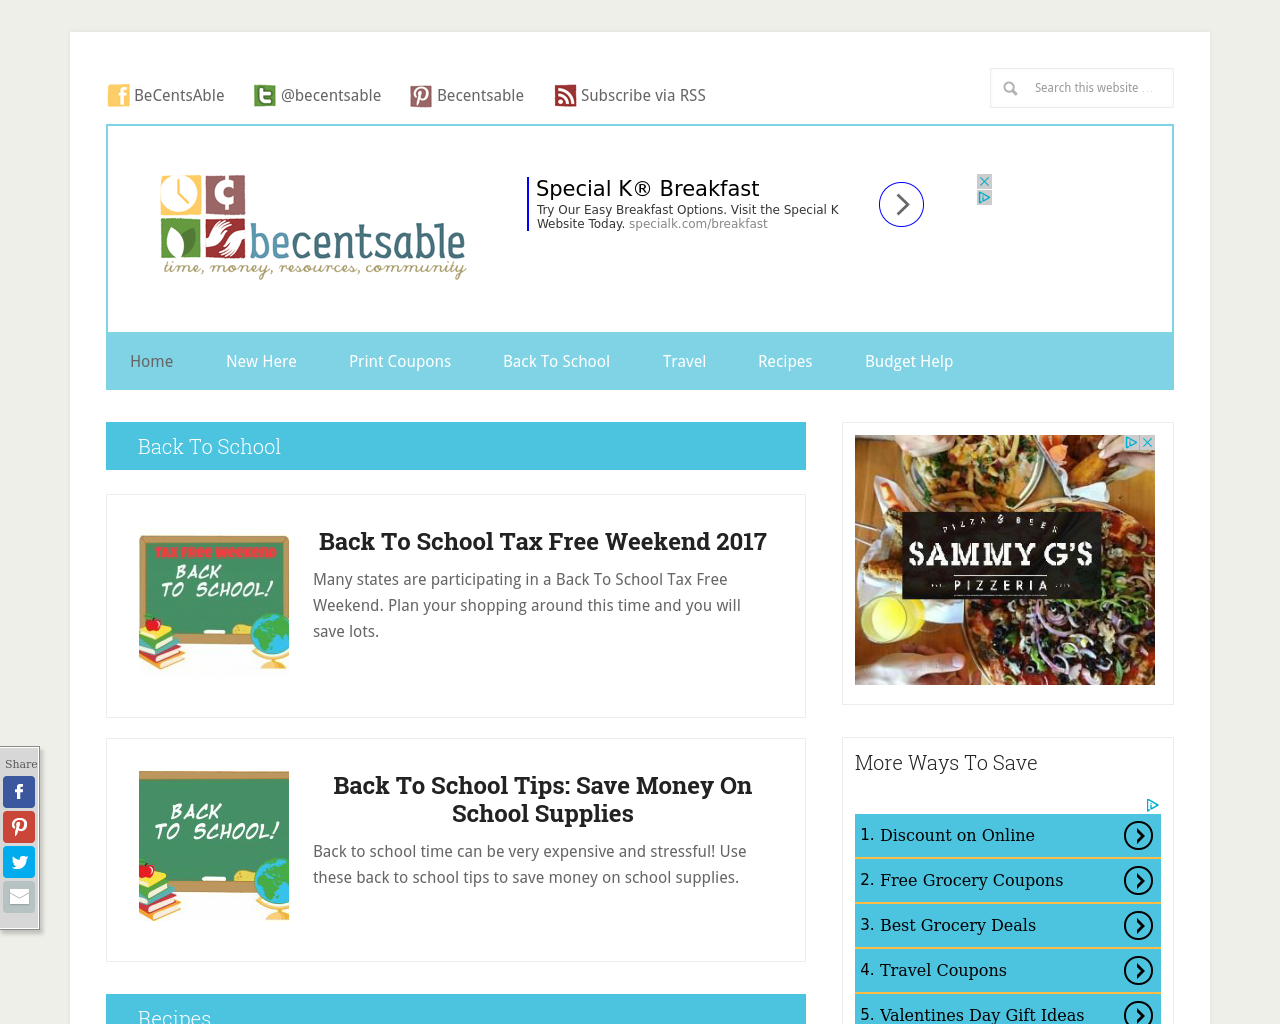 BeCentsAble-Advertising-Reviews-Pricing